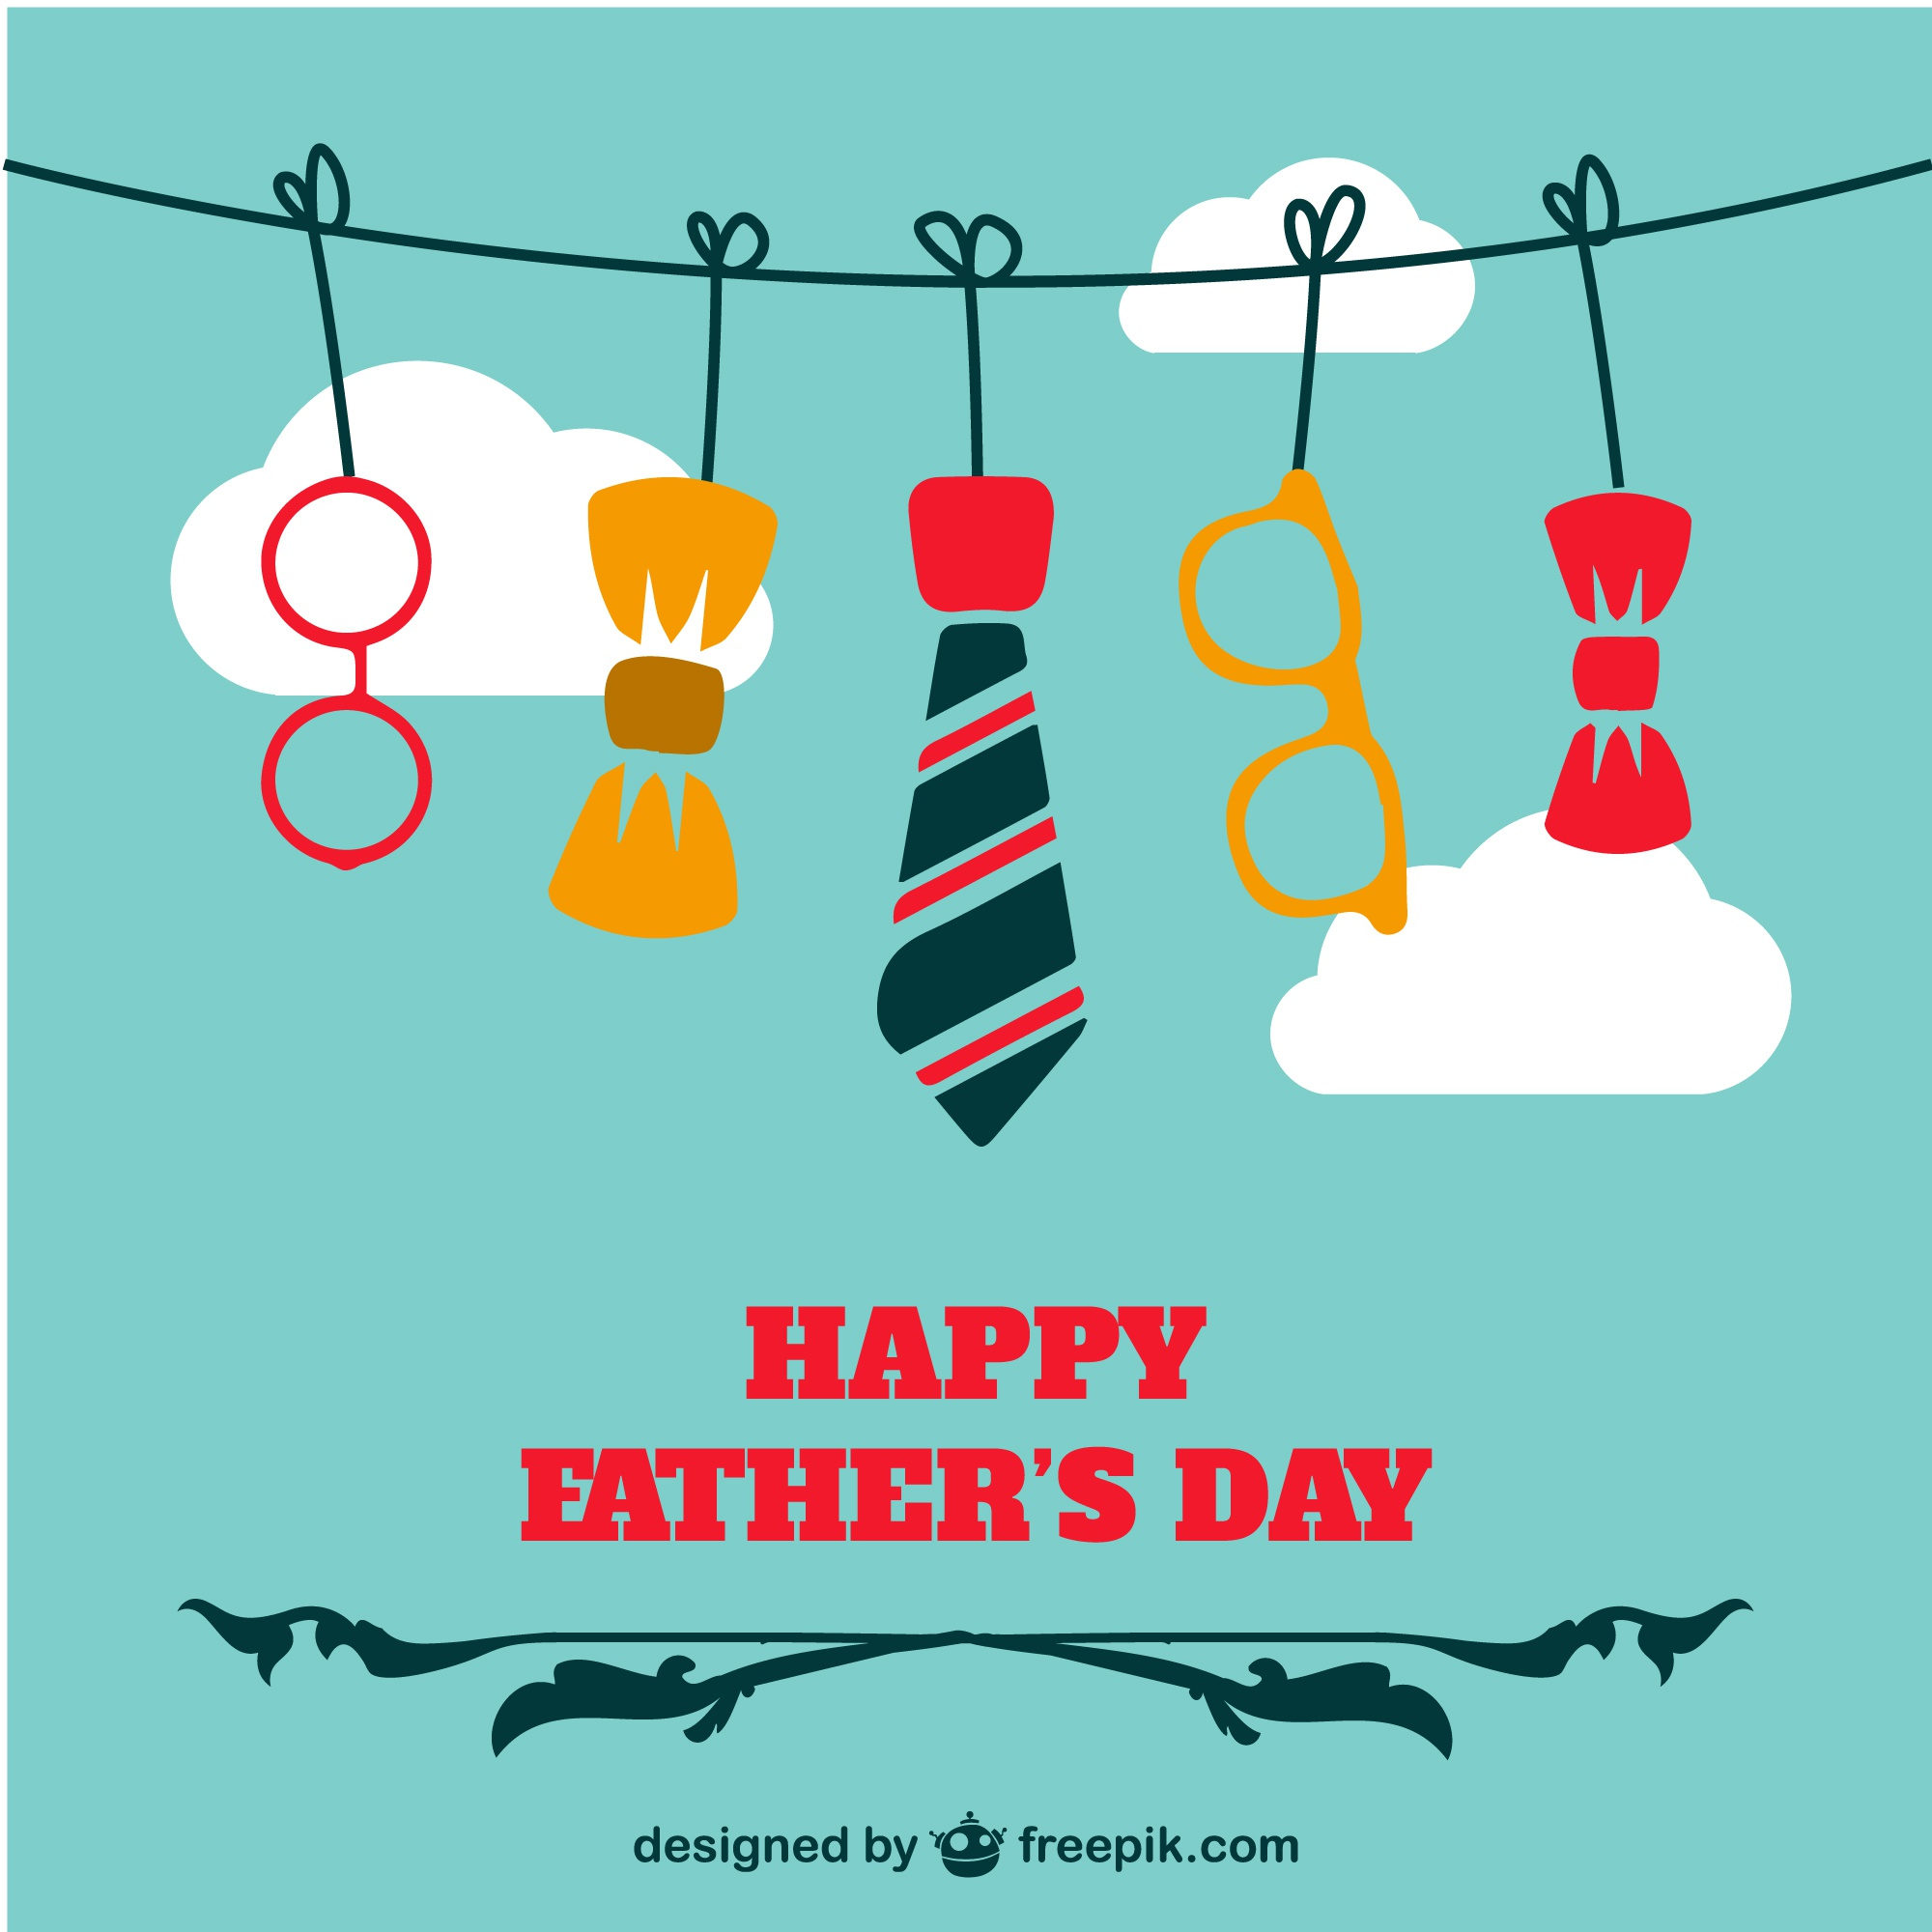 Father's day background with a hanging tie and two bow ties